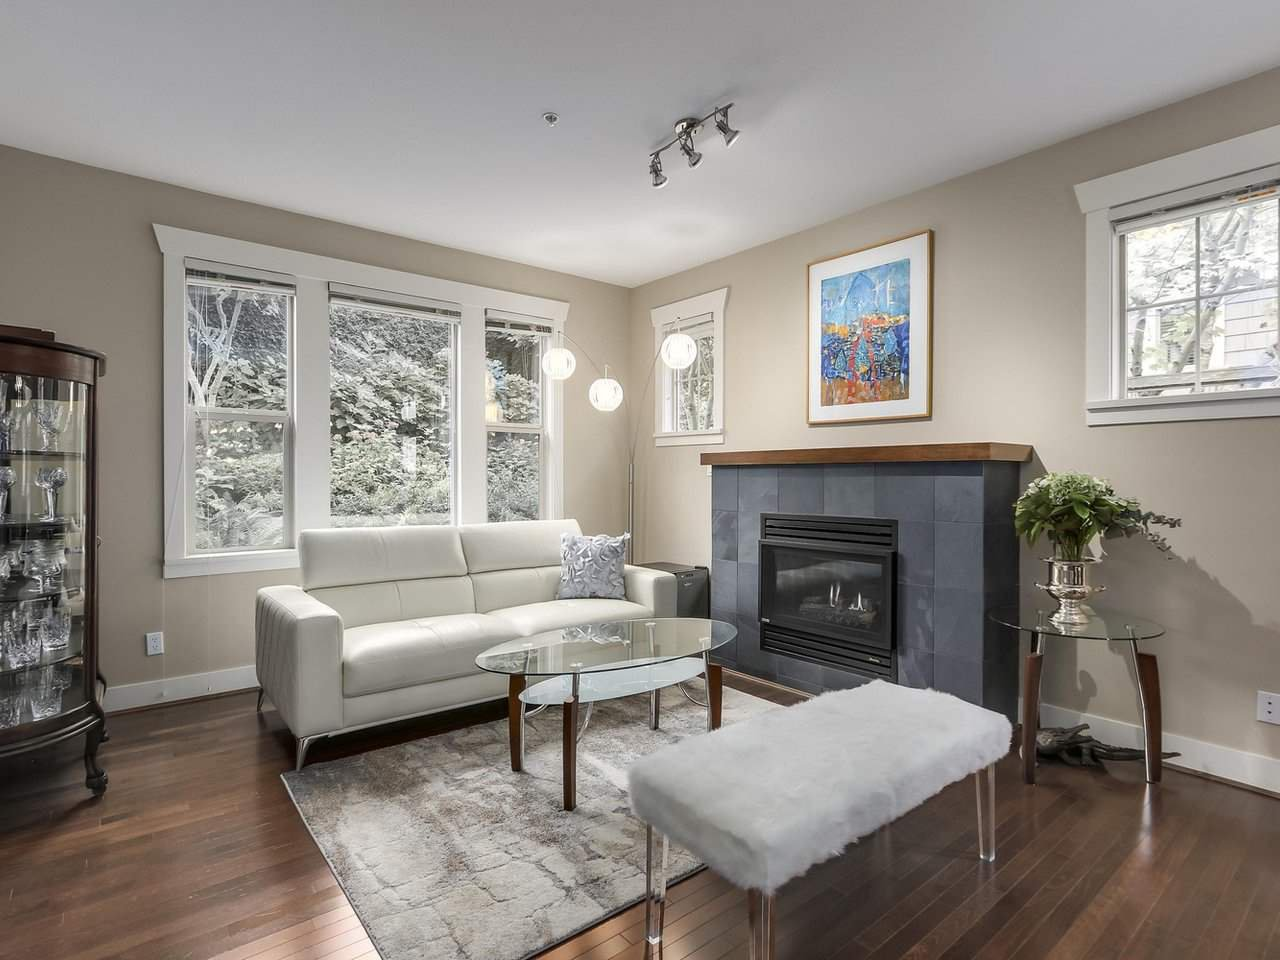 Main Photo: 229 E QUEENS ROAD in North Vancouver: Upper Lonsdale Townhouse for sale : MLS®# R2362718